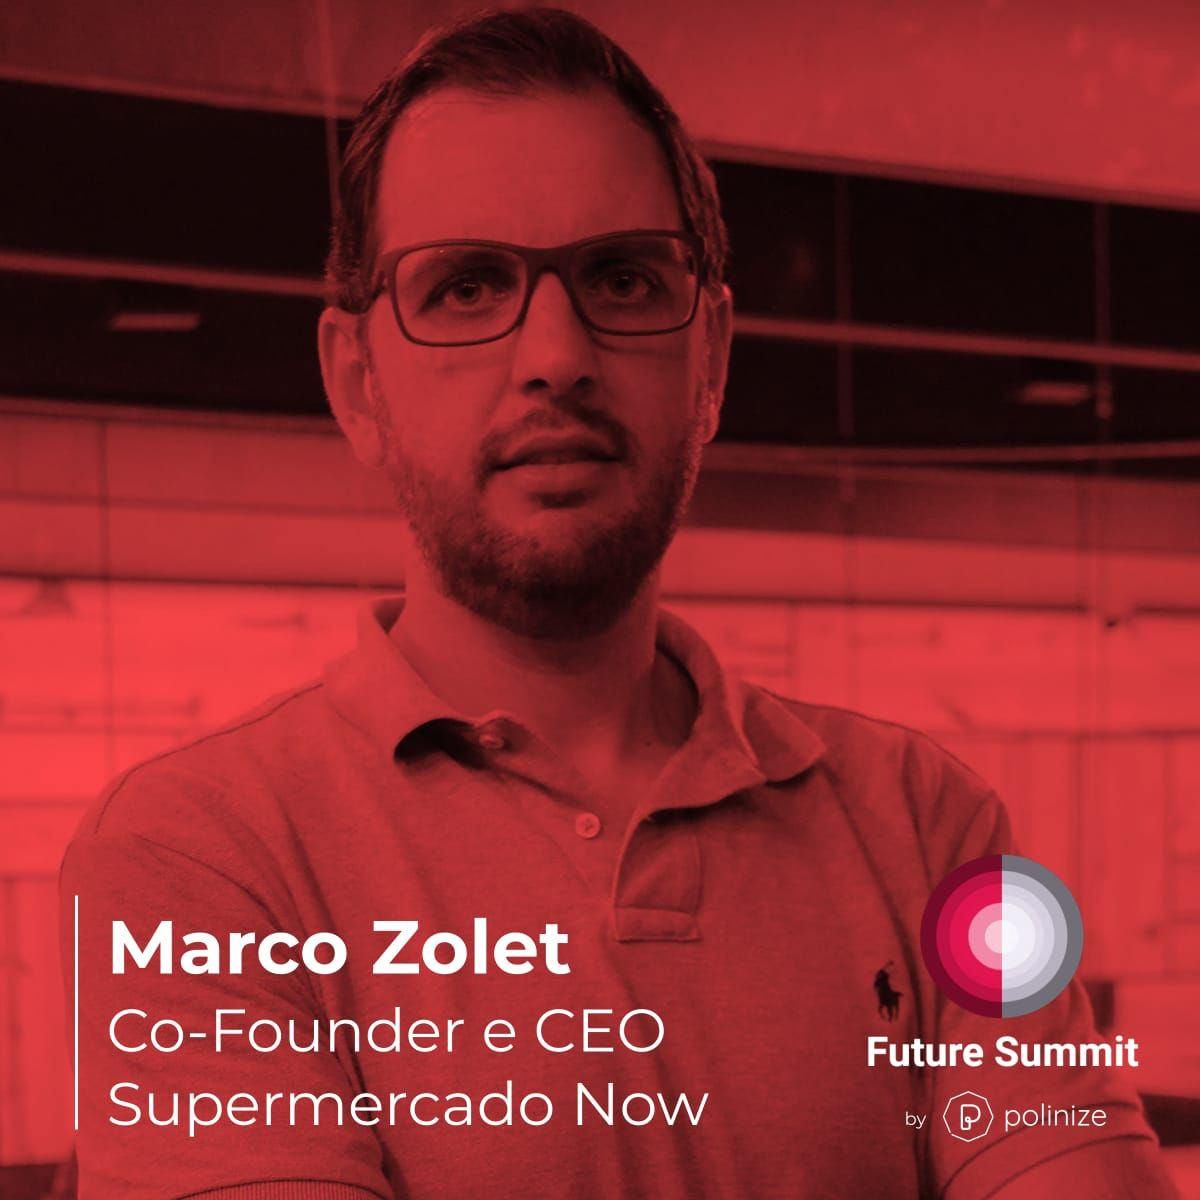 Supermercado Now é exemplo de inovação no Future Summit 2019